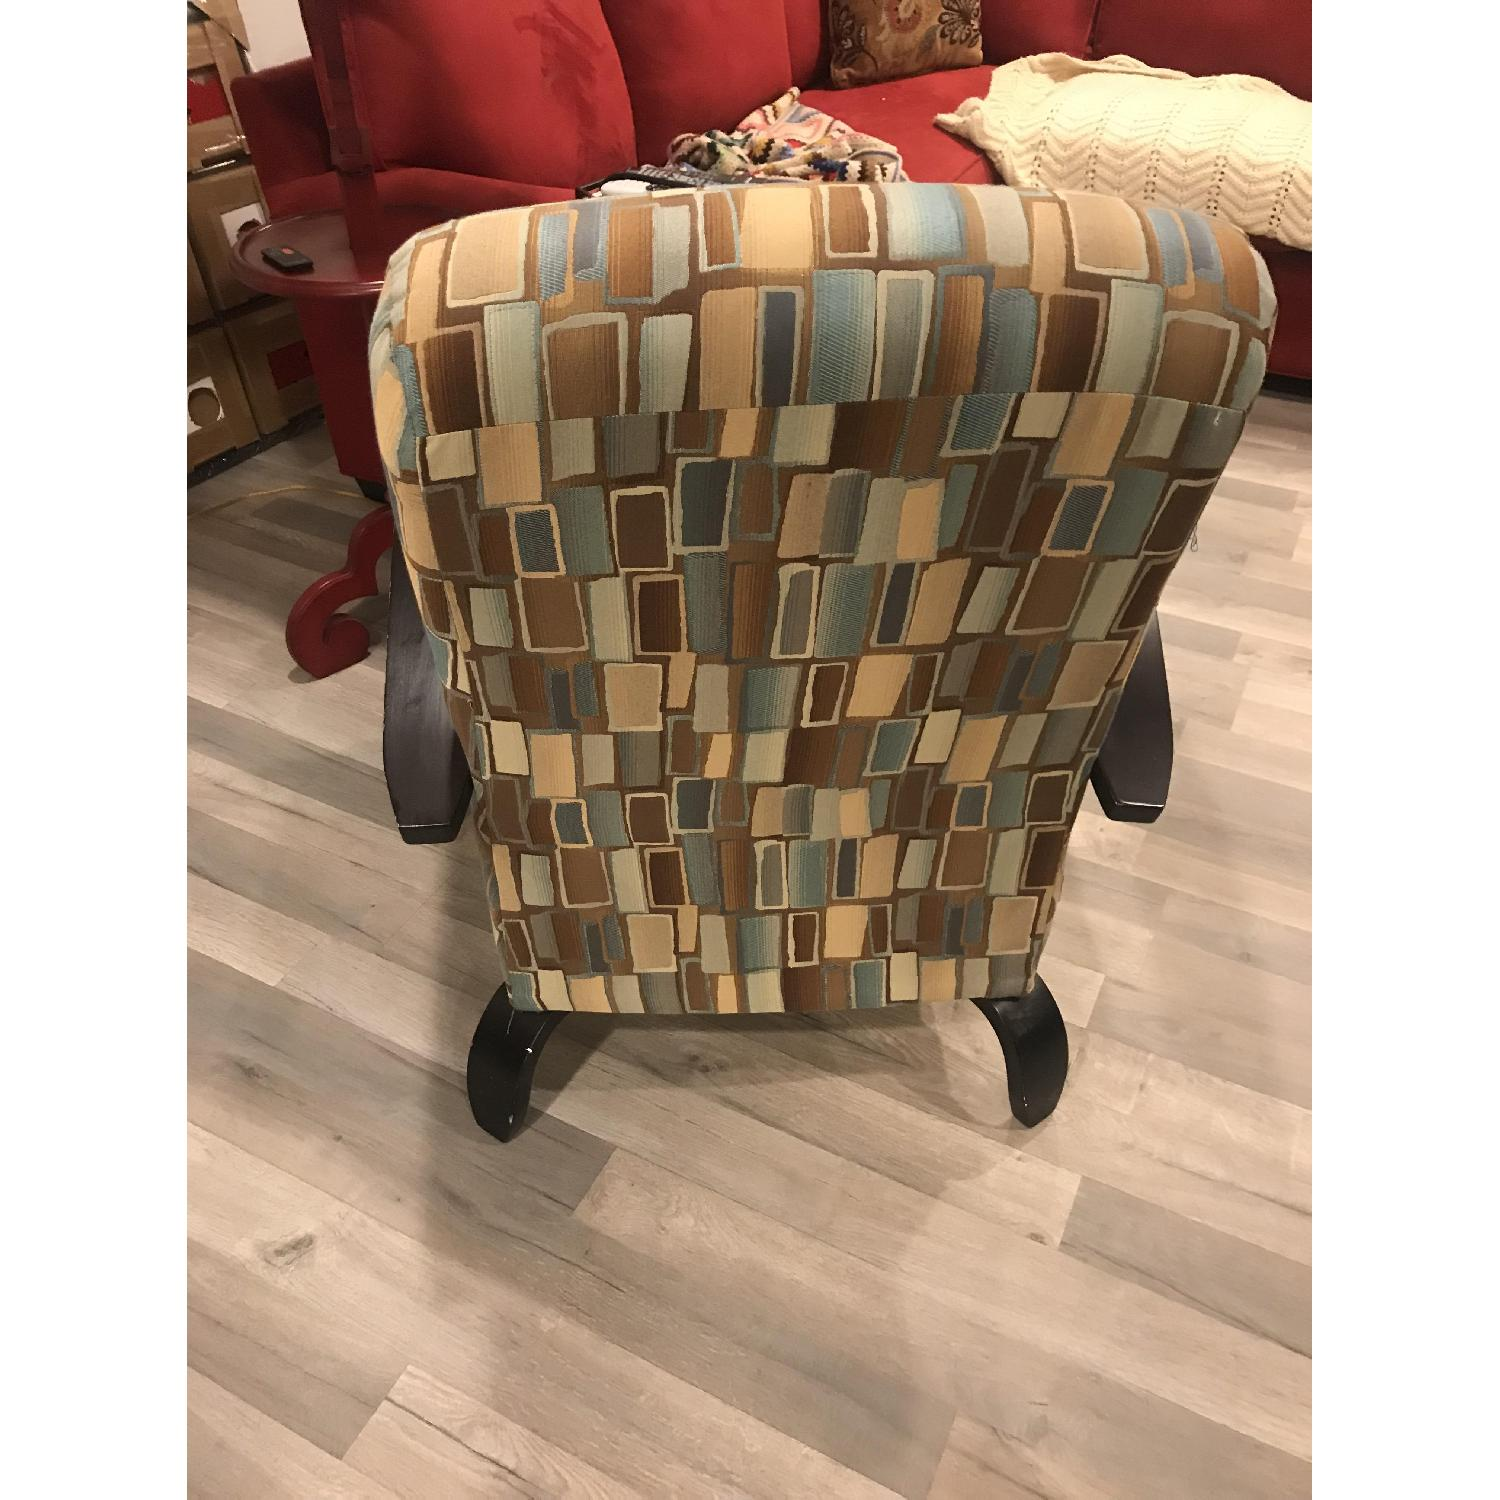 Wood & Fabric Upholstered Chairs - image-7